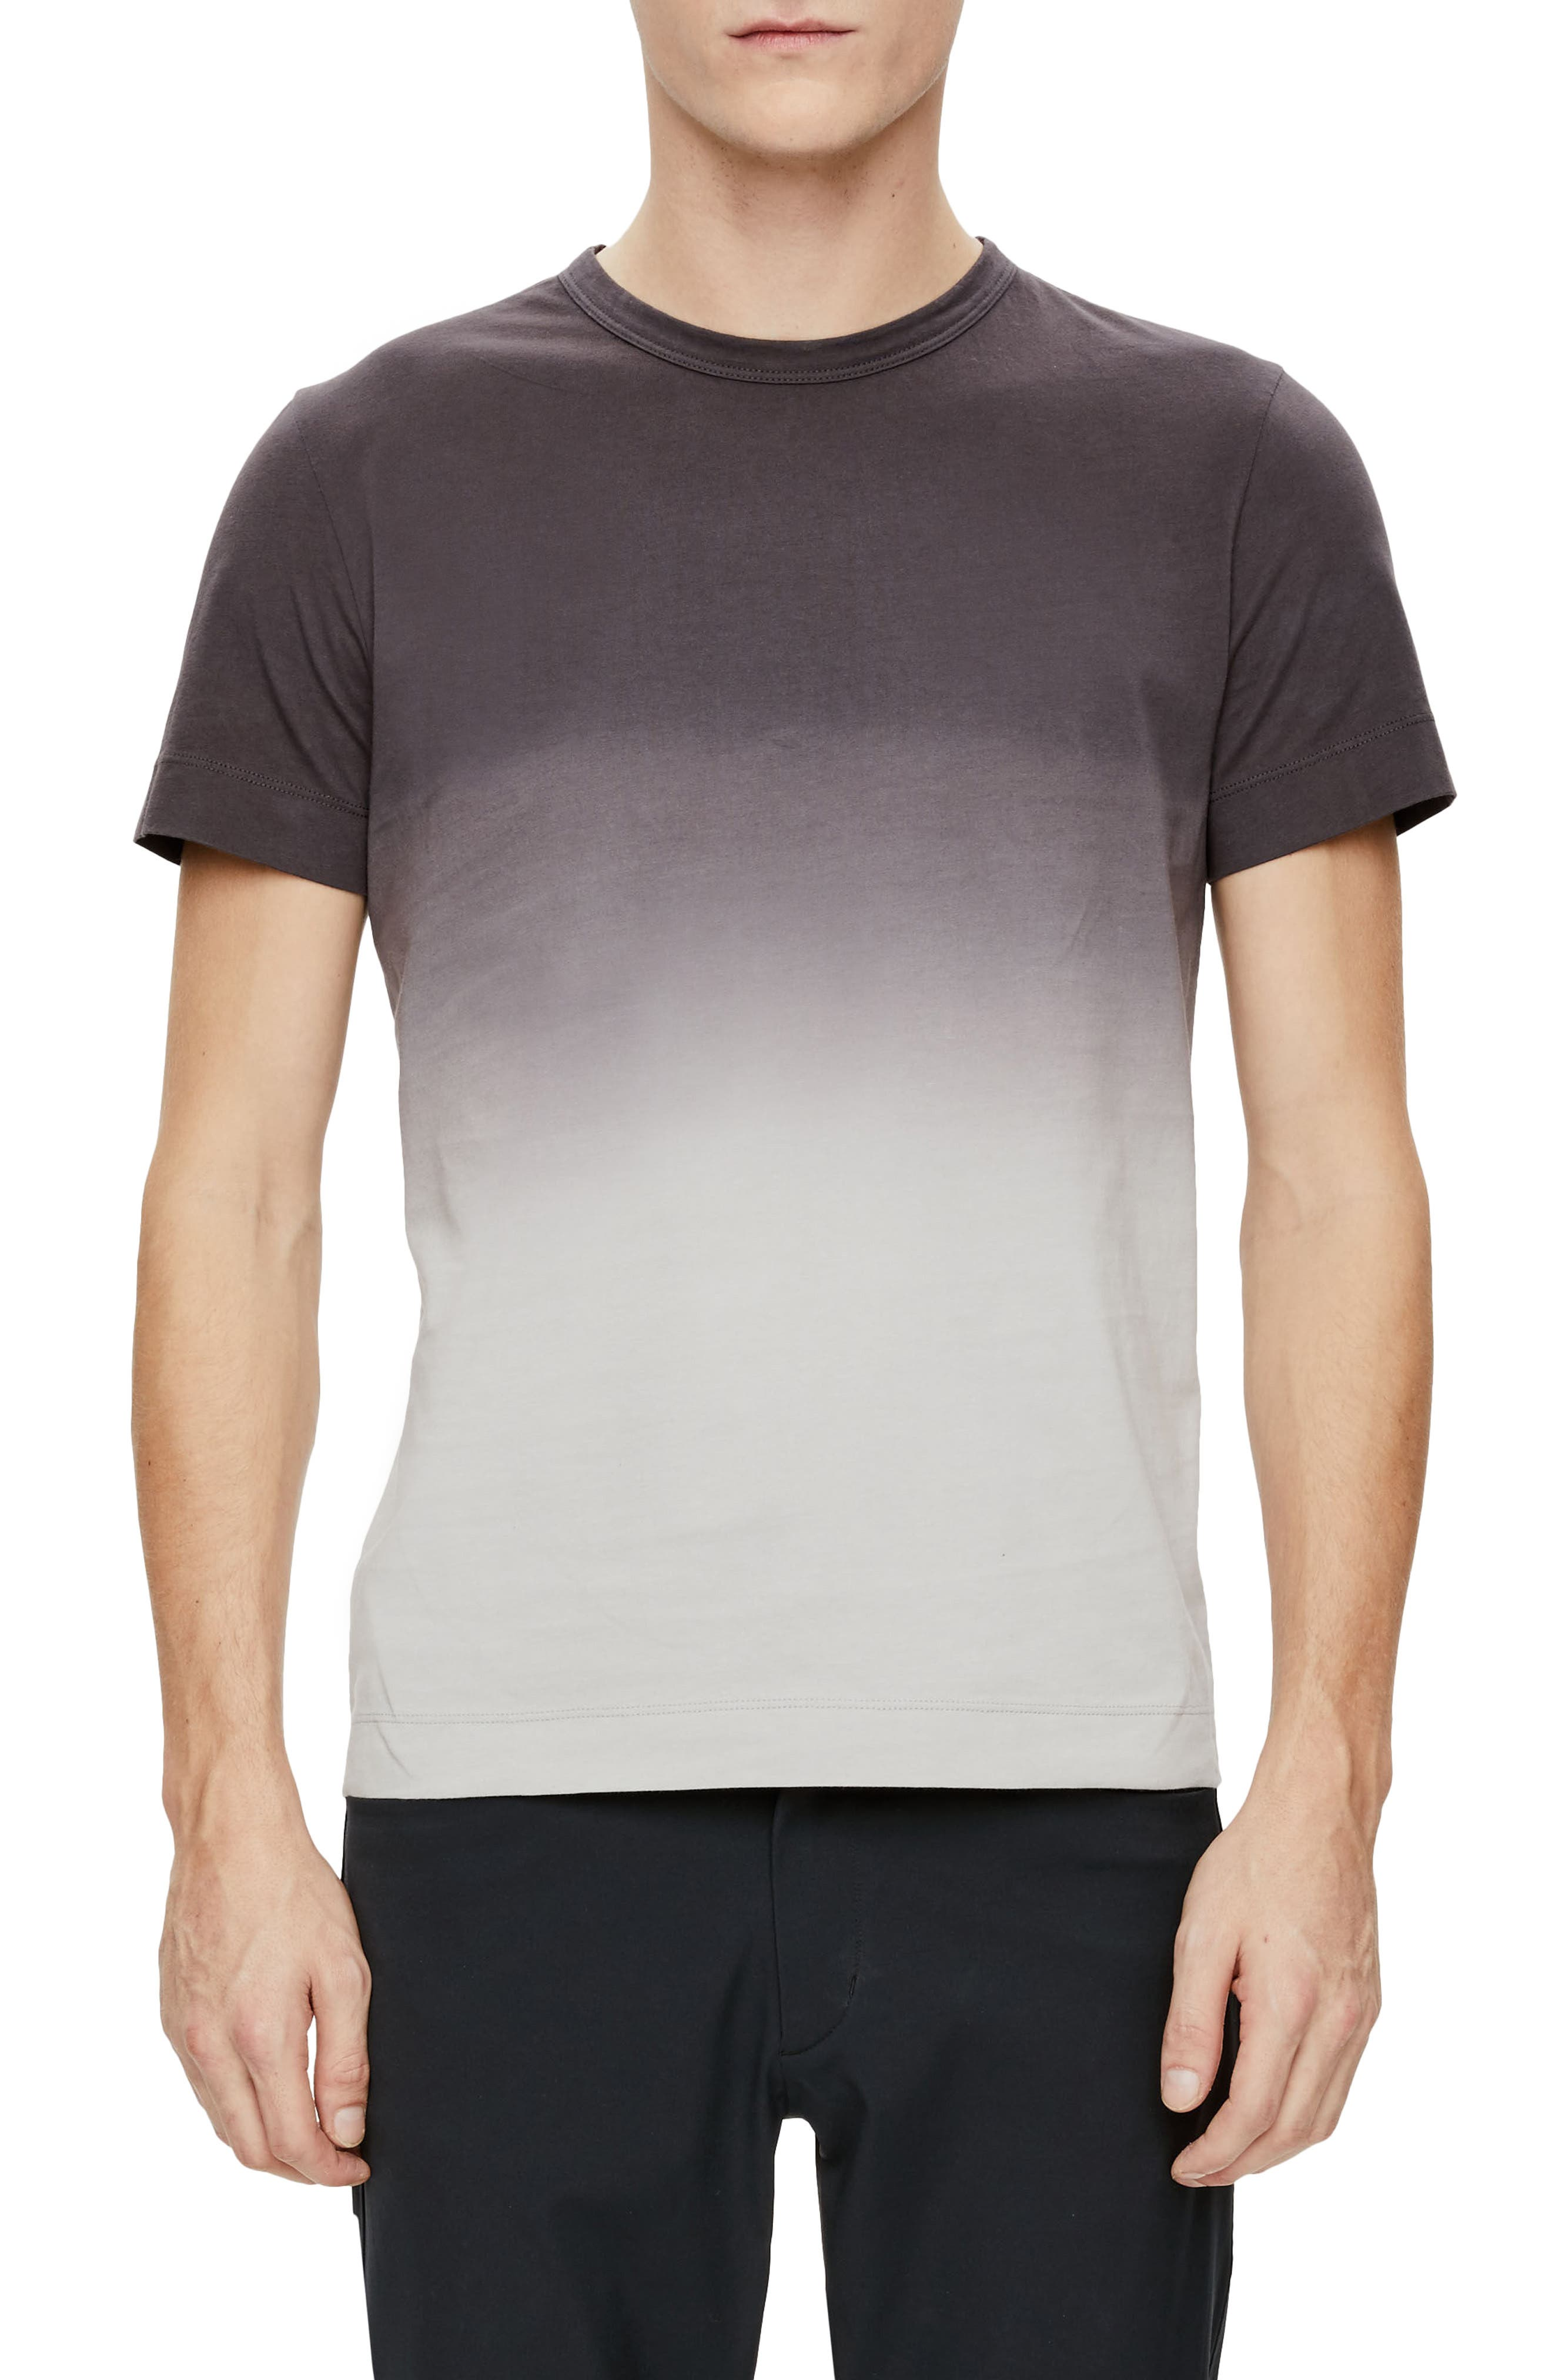 Gaskell Dip Dye Ombré T-Shirt,                         Main,                         color, Ember Multi